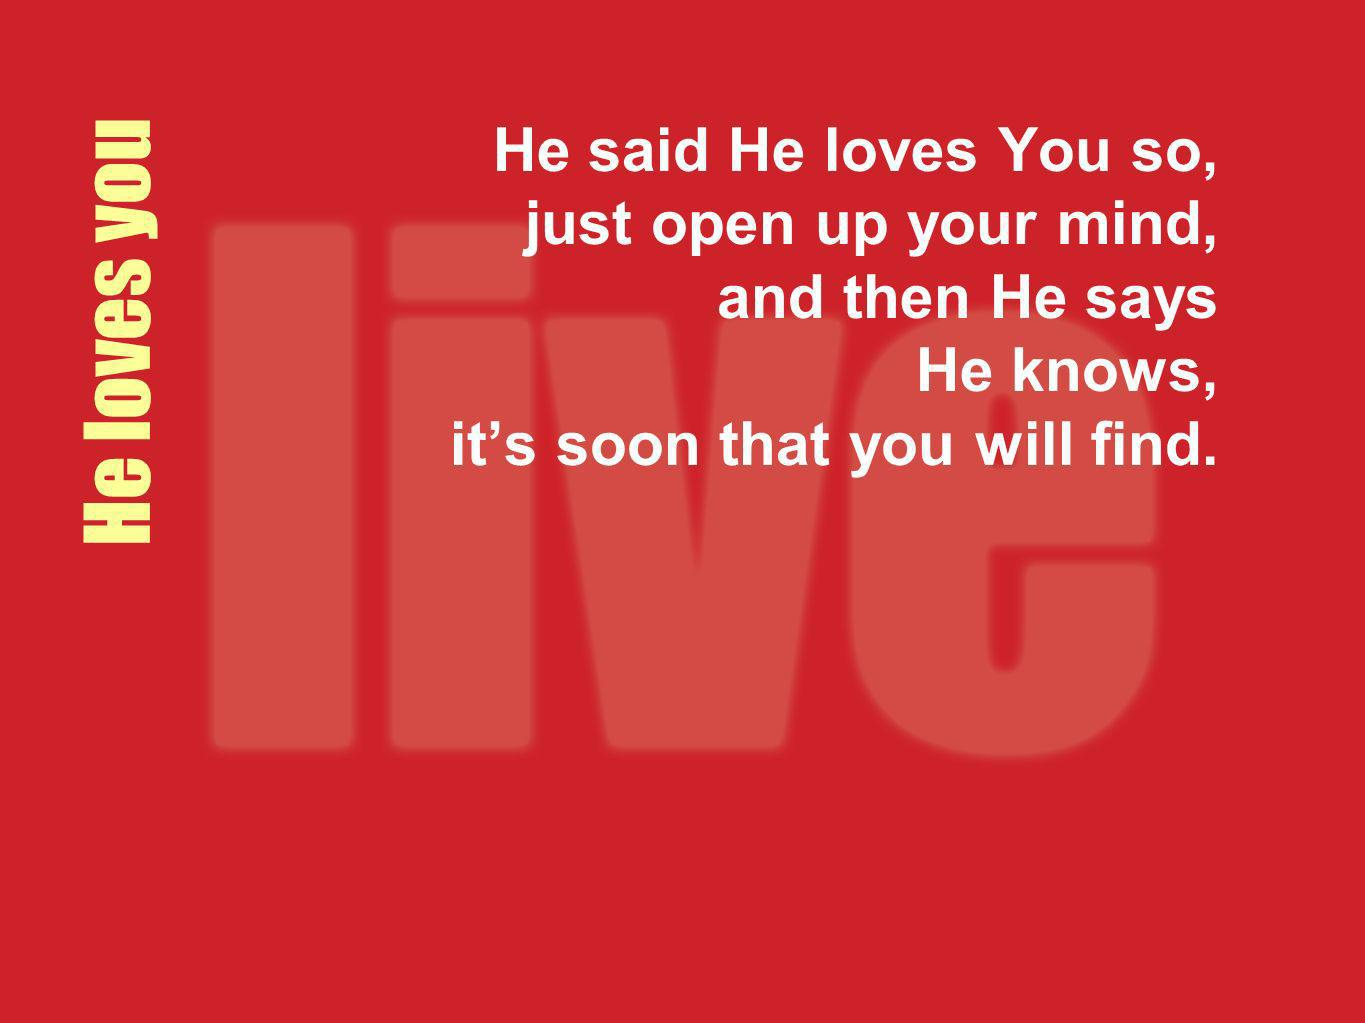 He said He loves You so, just open up your mind, and then He says He knows, it's soon that you will find.